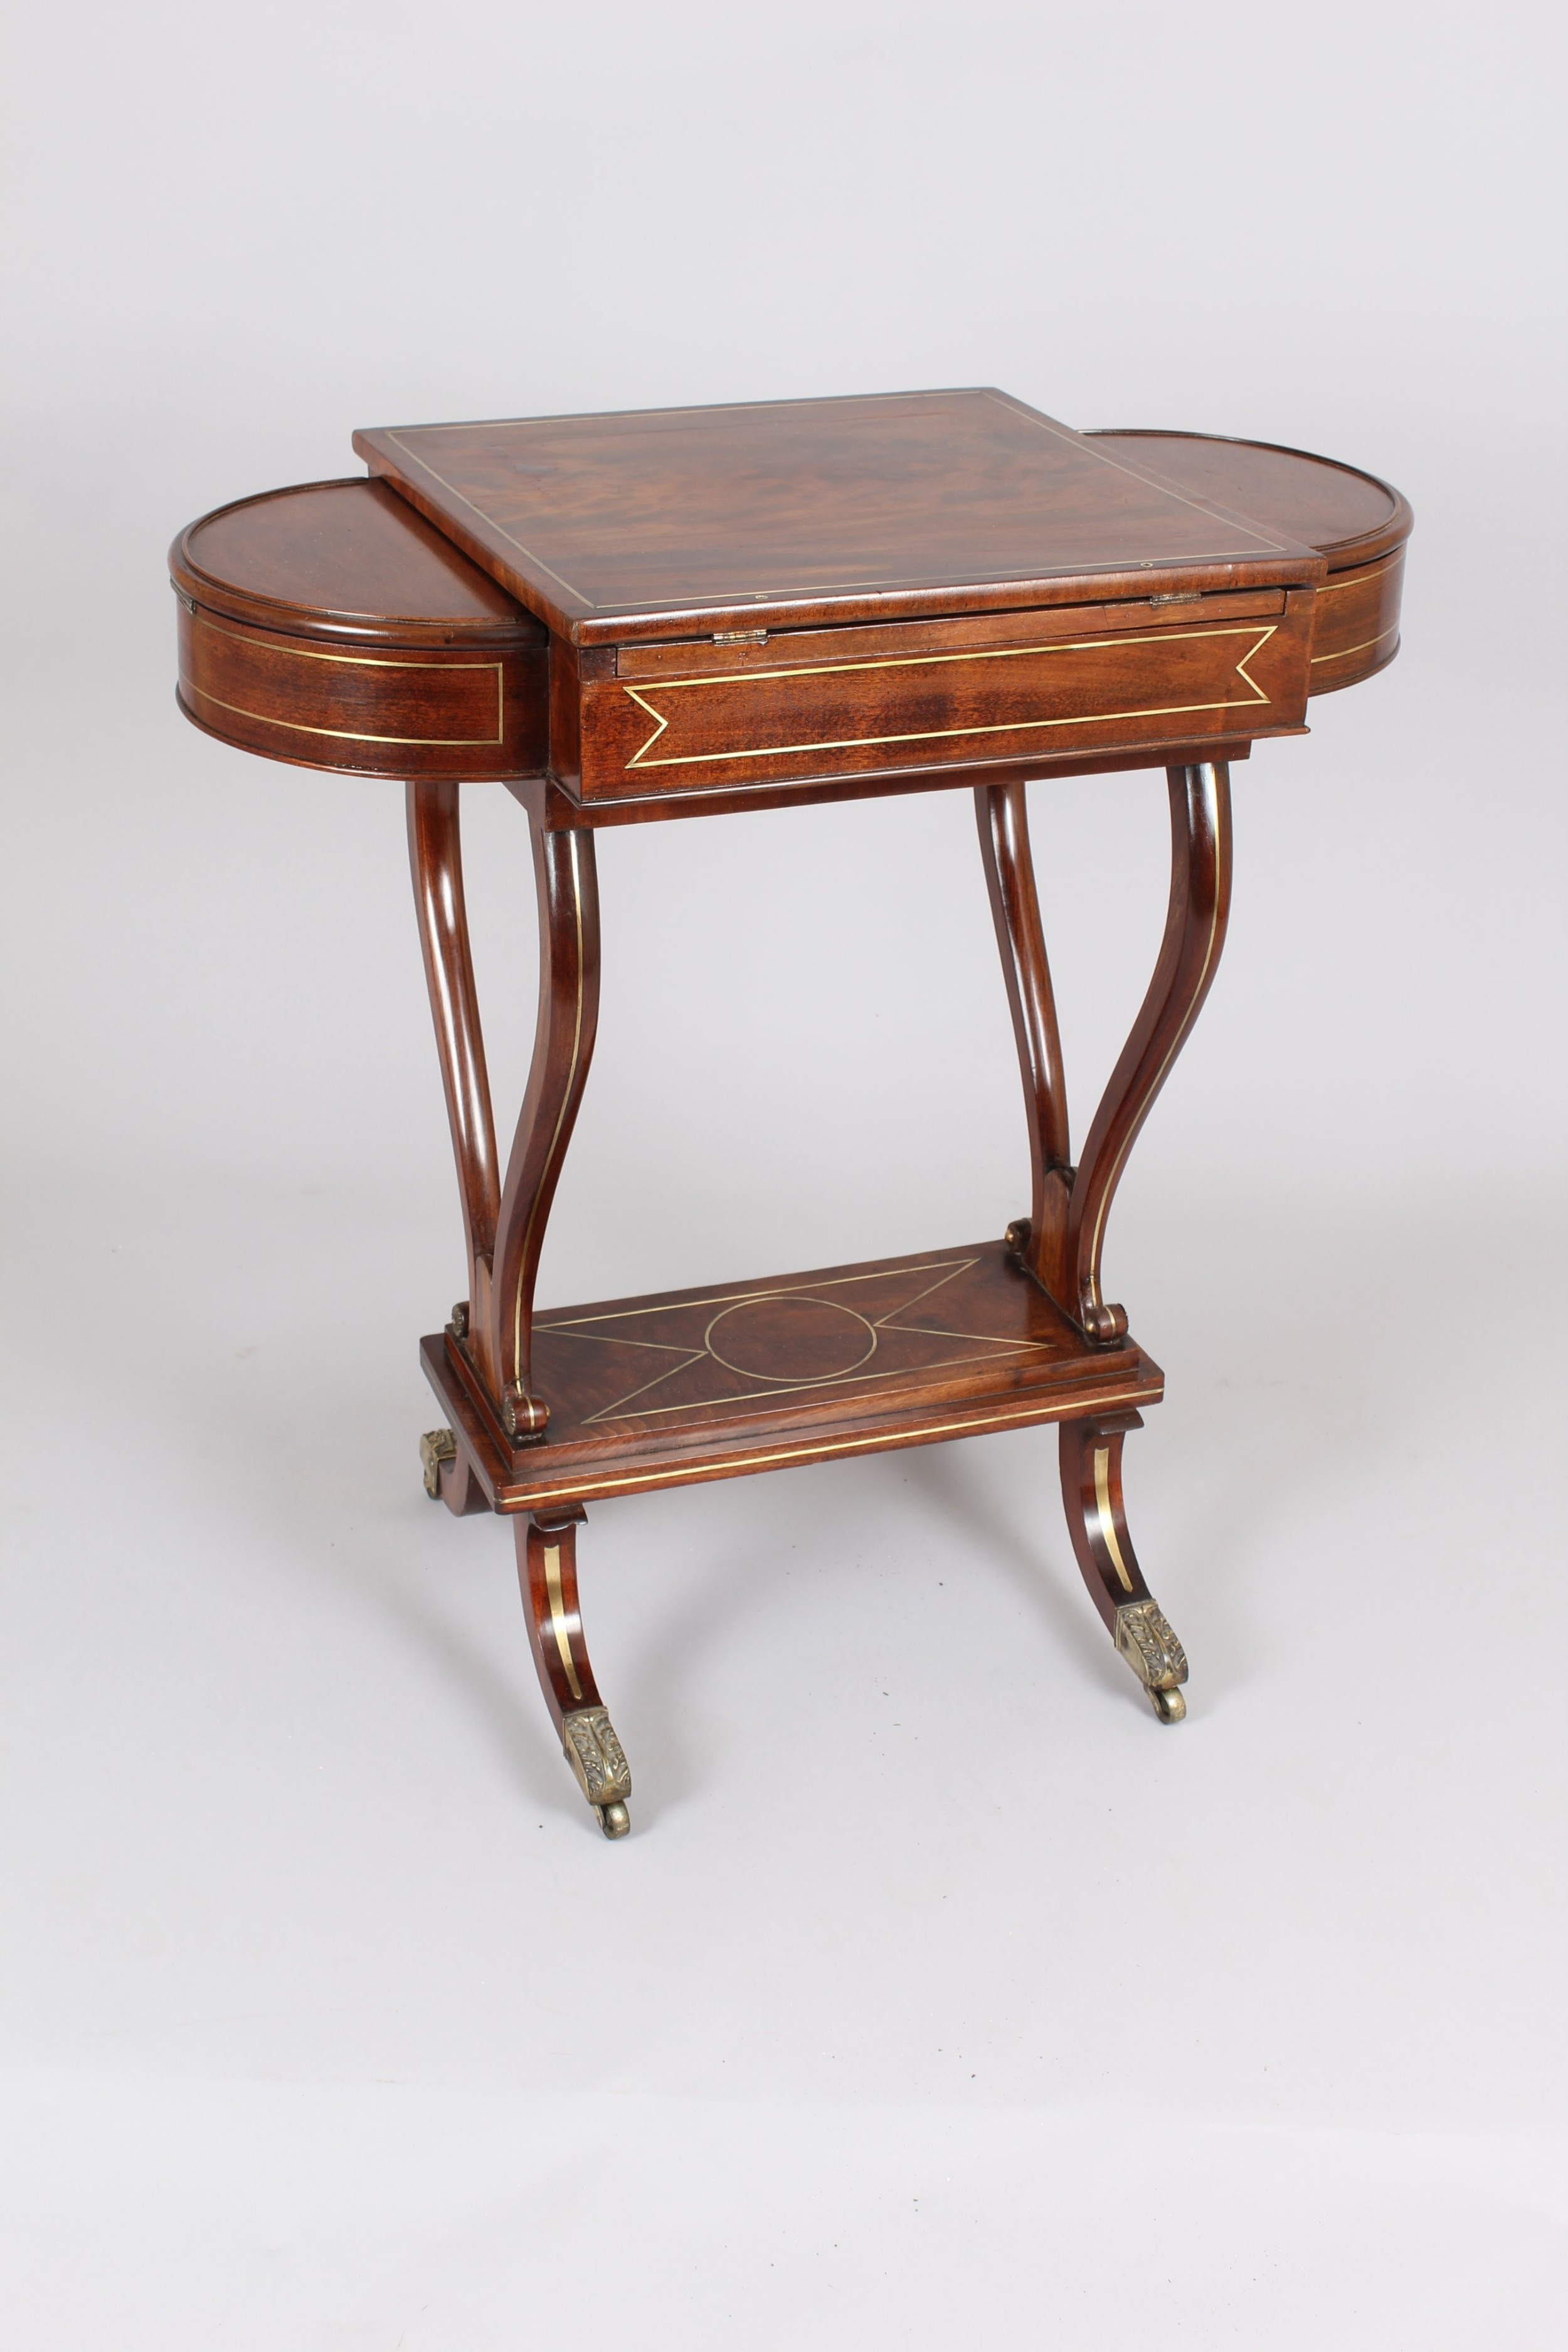 regency mahogany and brass inlaid worktable